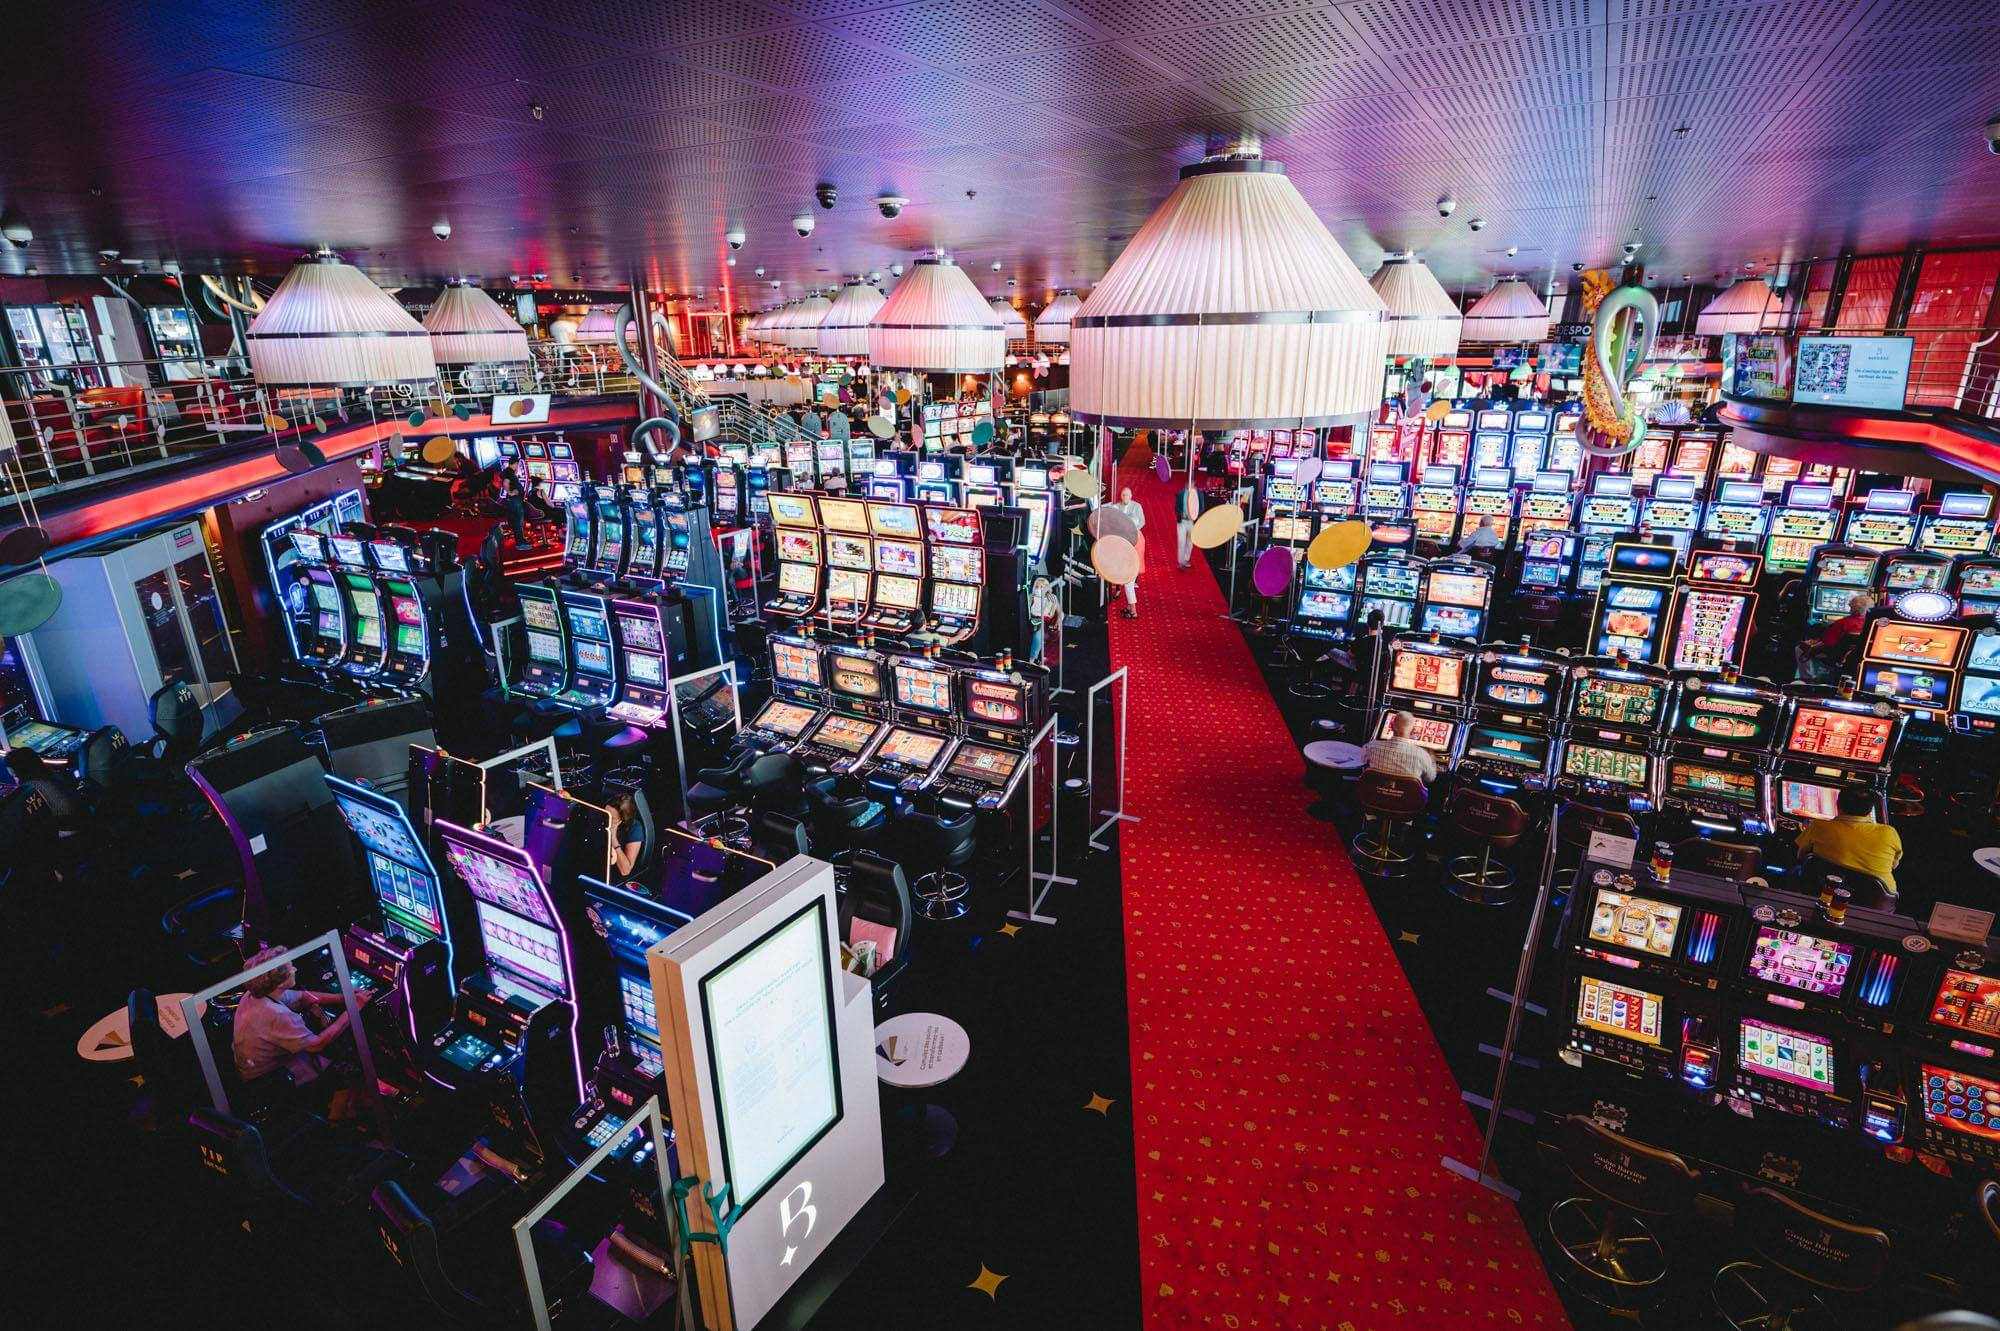 It's easy to win at online baccarat gambling games